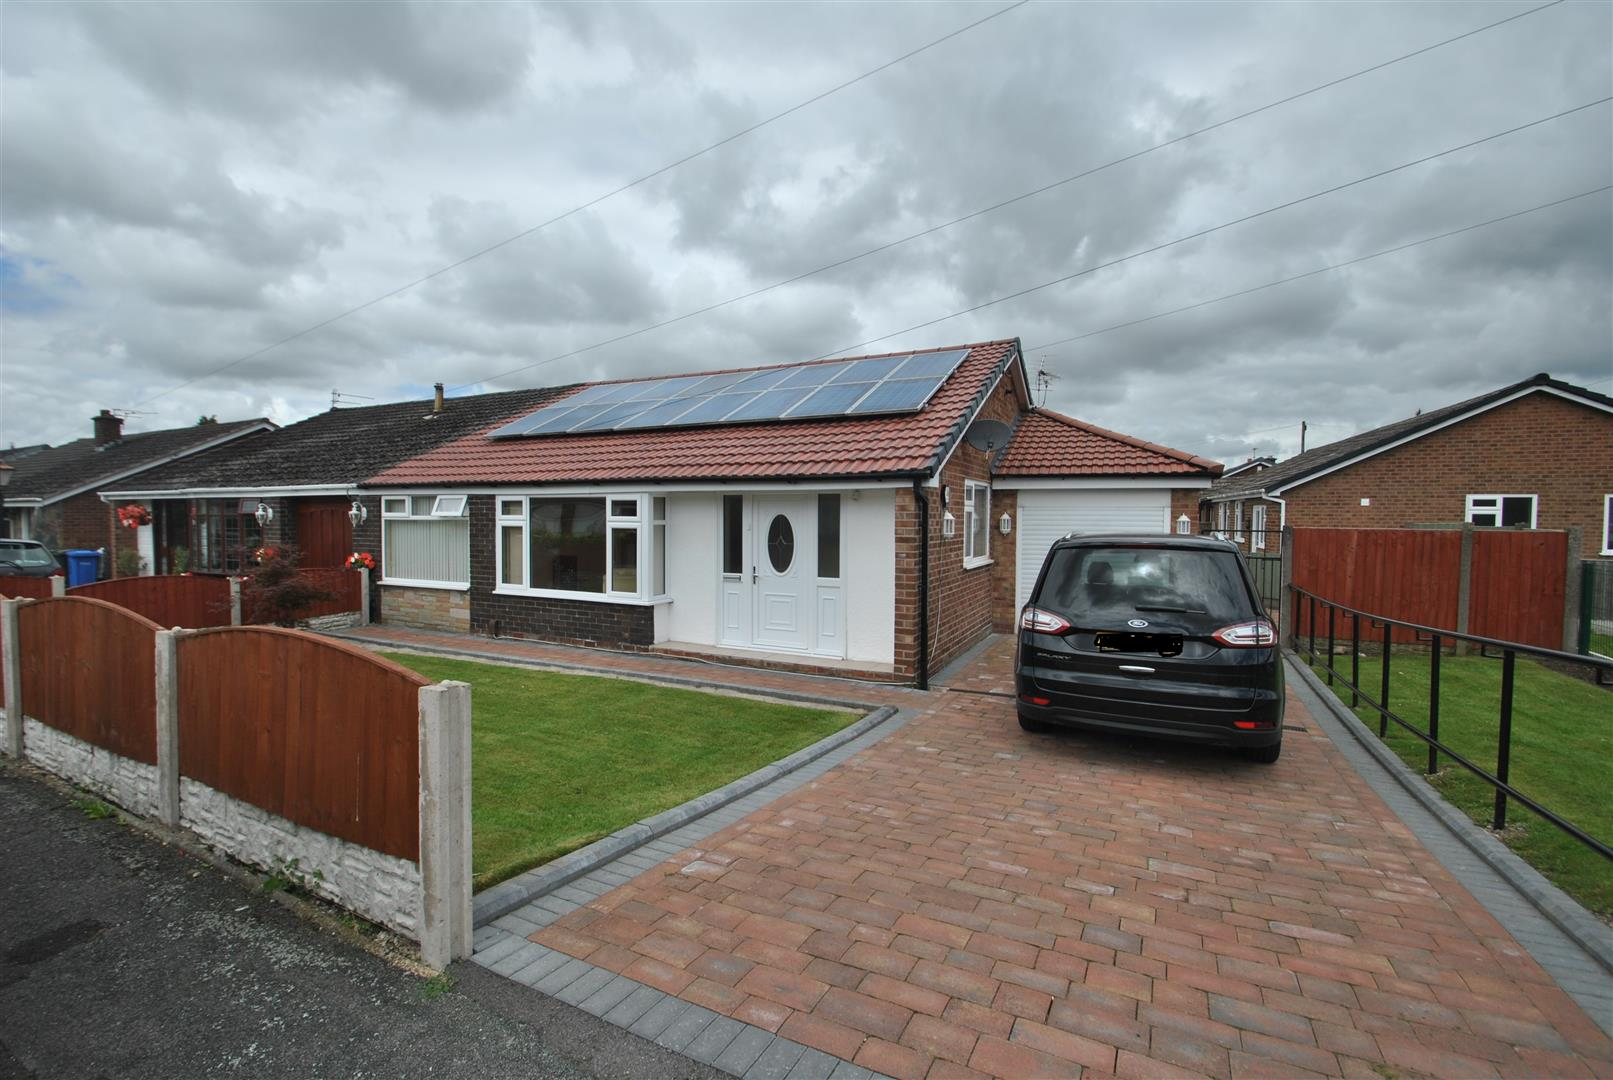 3 Bedrooms Bungalow for sale in Winfrith Road, FEARNHEAD, Warrington, WA2